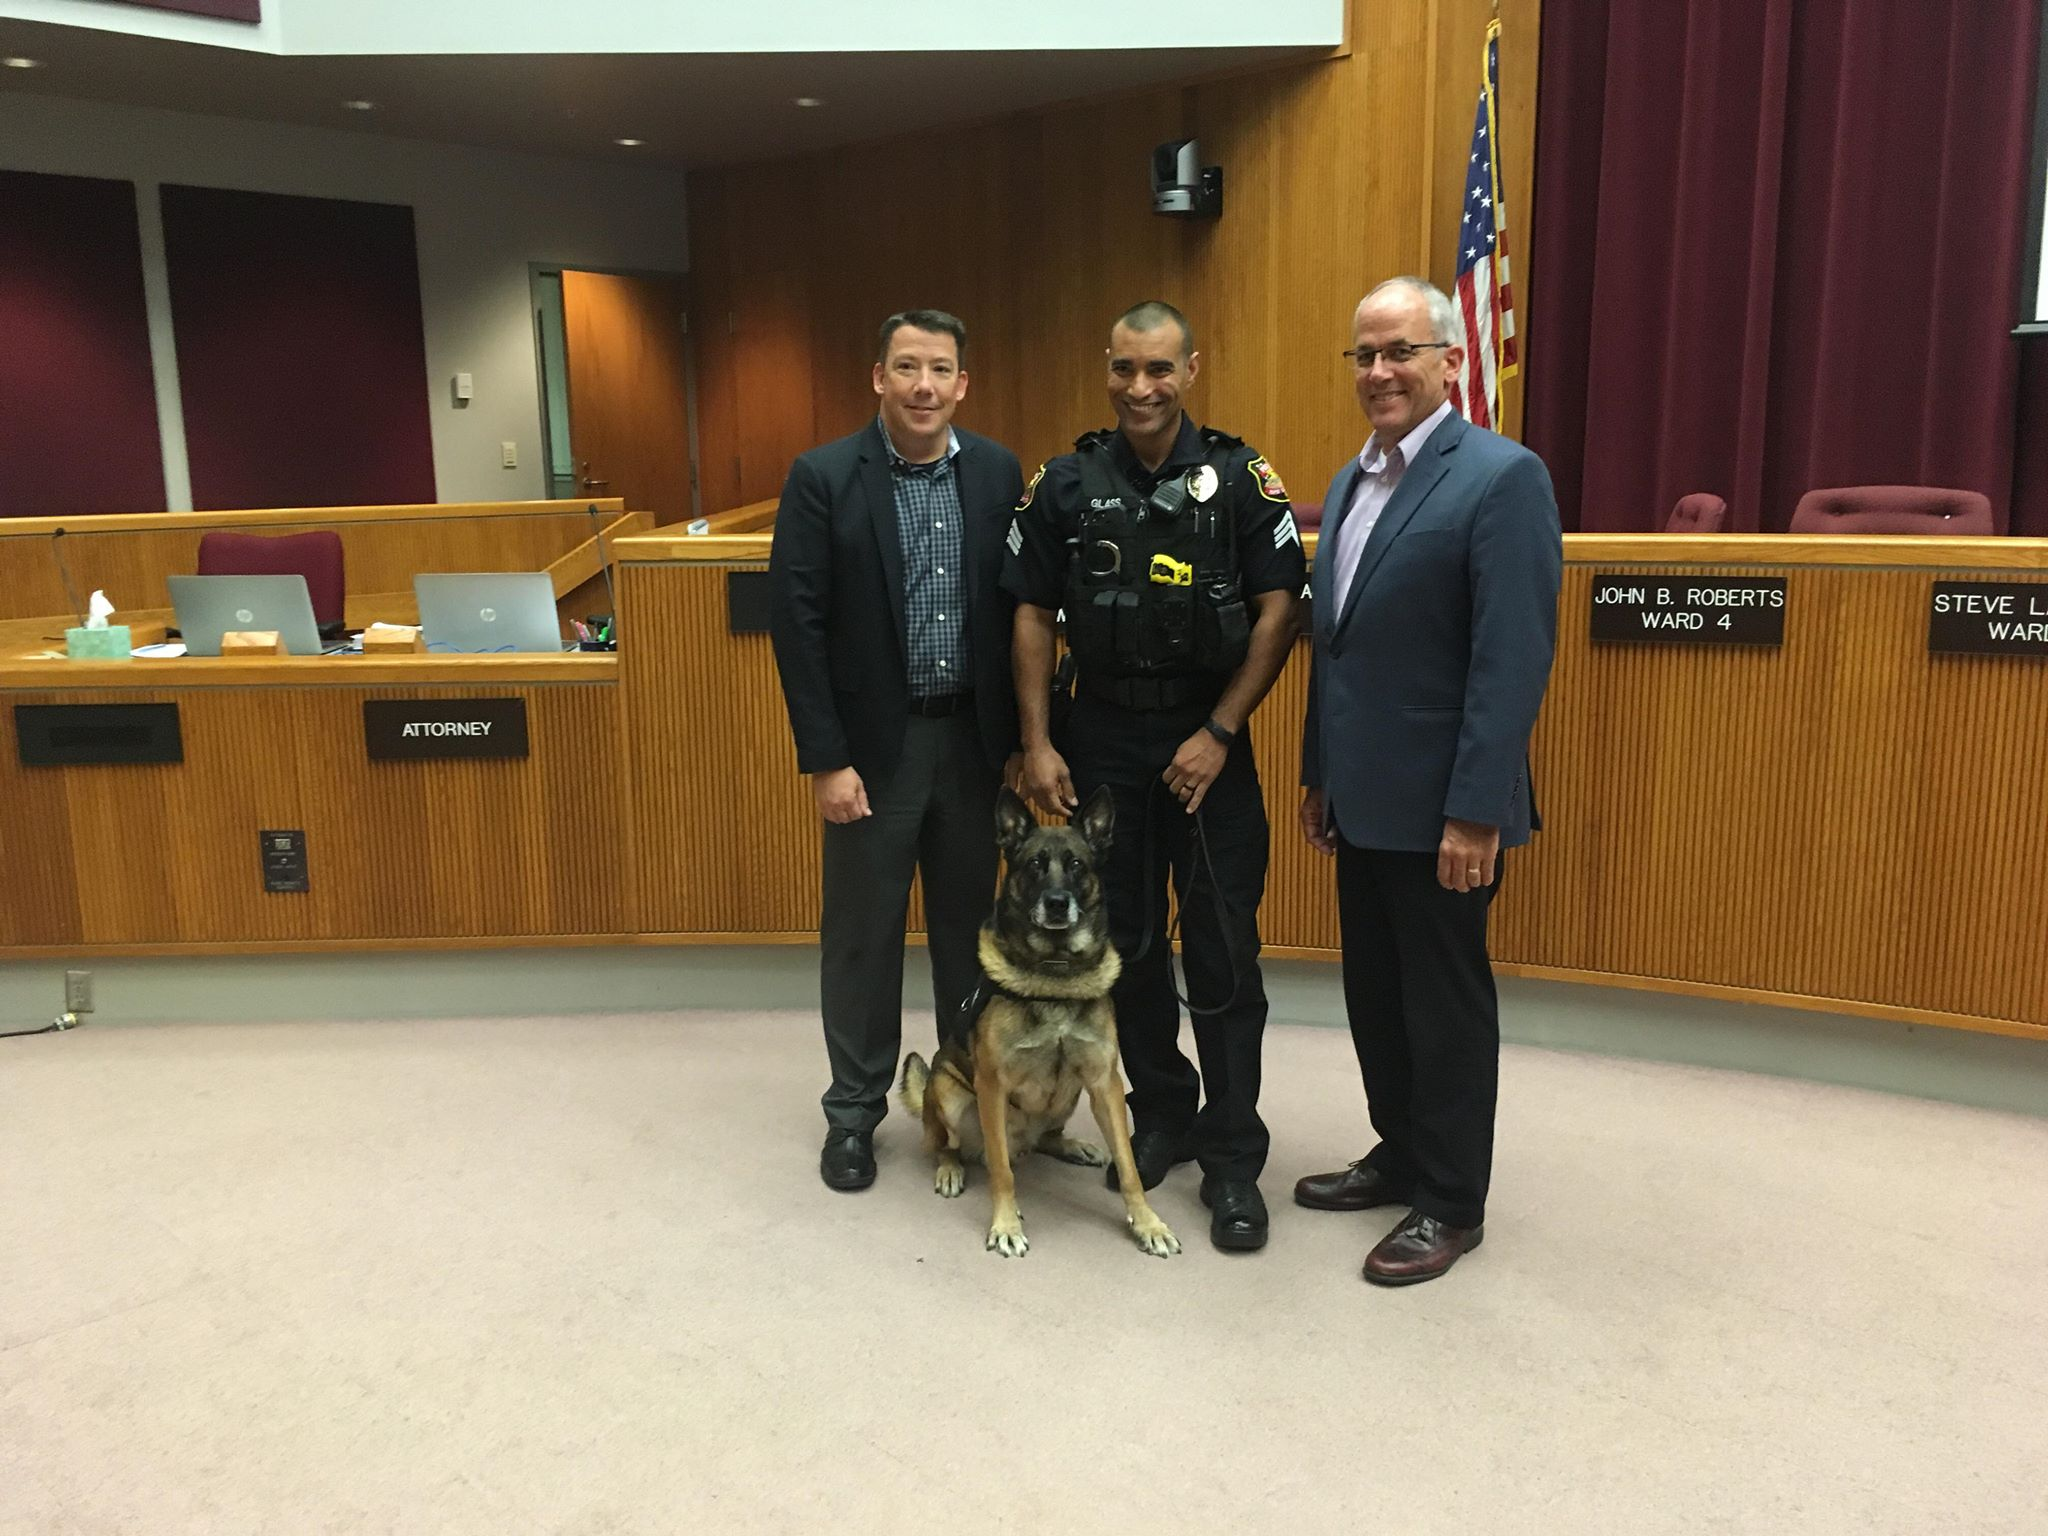 RCPD K9 unit Jackson poses with city officials celebrating his retirement after 9 years.